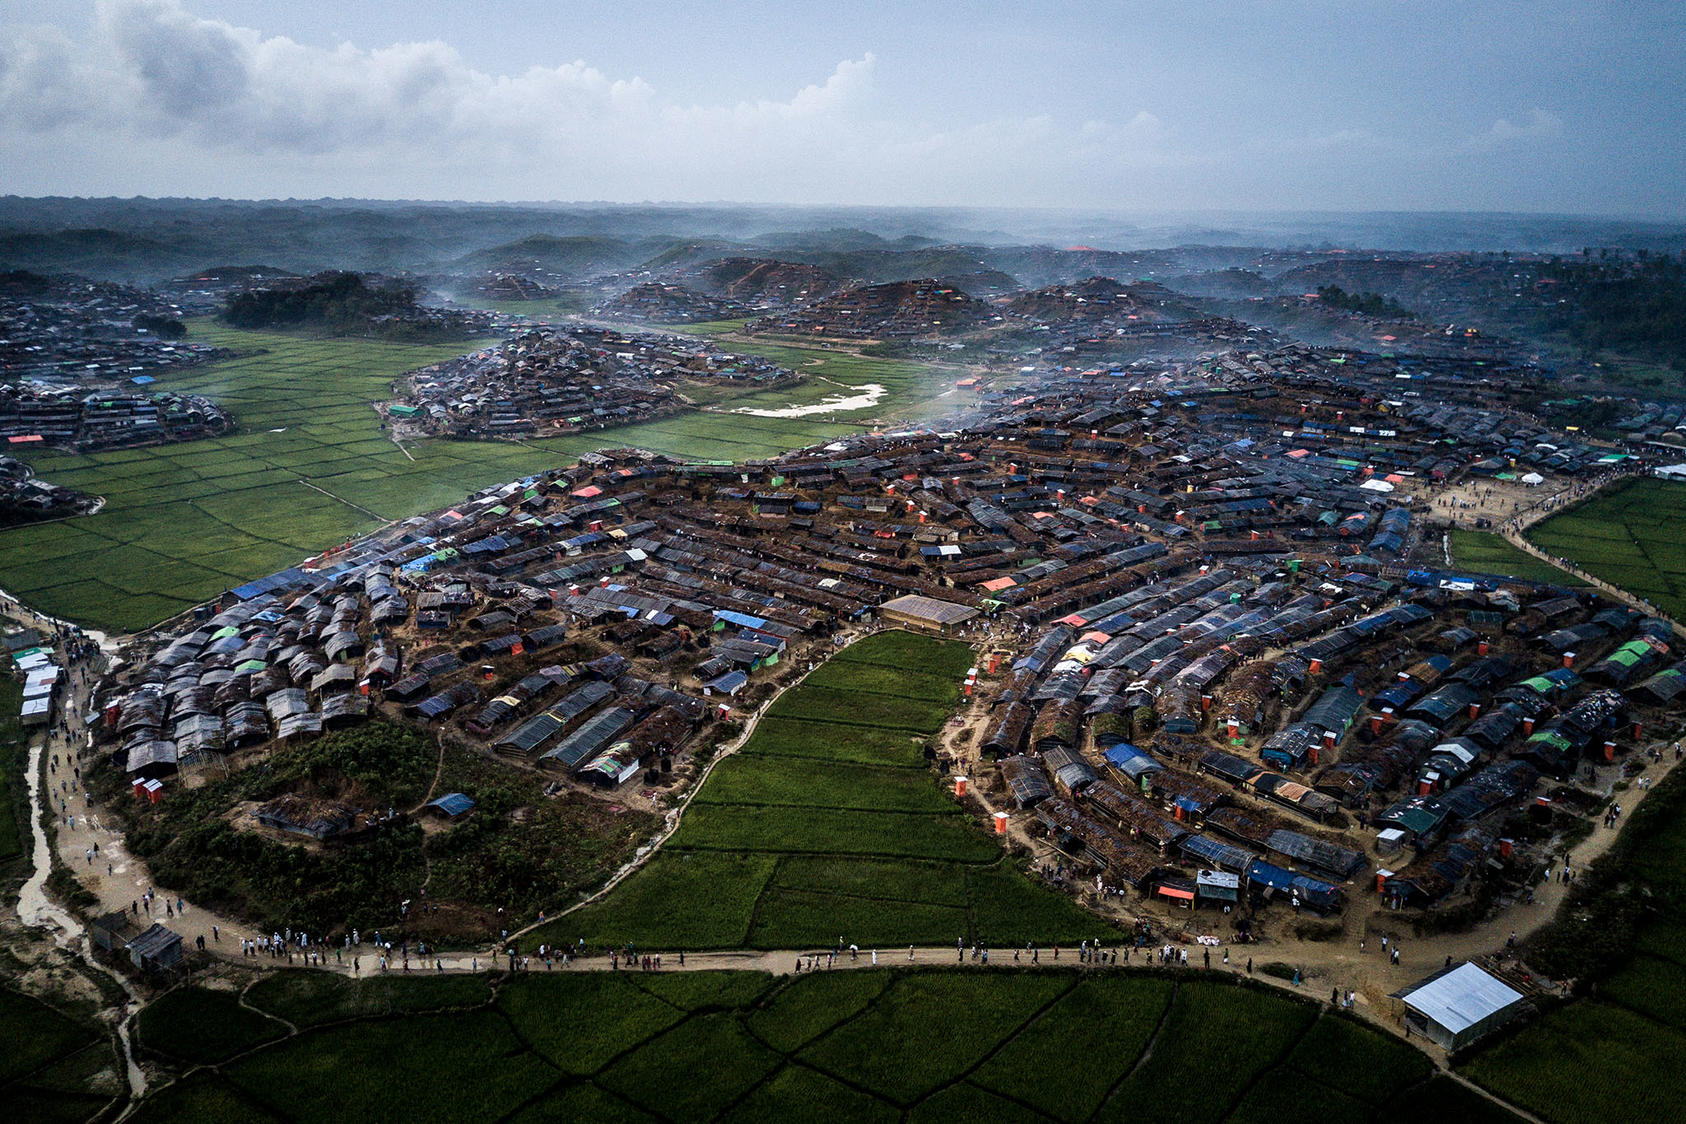 Shacks for Rohingya refugees jam hillsides above often flooded rice fields in Bangladesh. Extreme population densities and limited water supplies for many refugees impede basic steps to limit the spread of COVID-19. (Sergey Ponomarev/The New York Times)